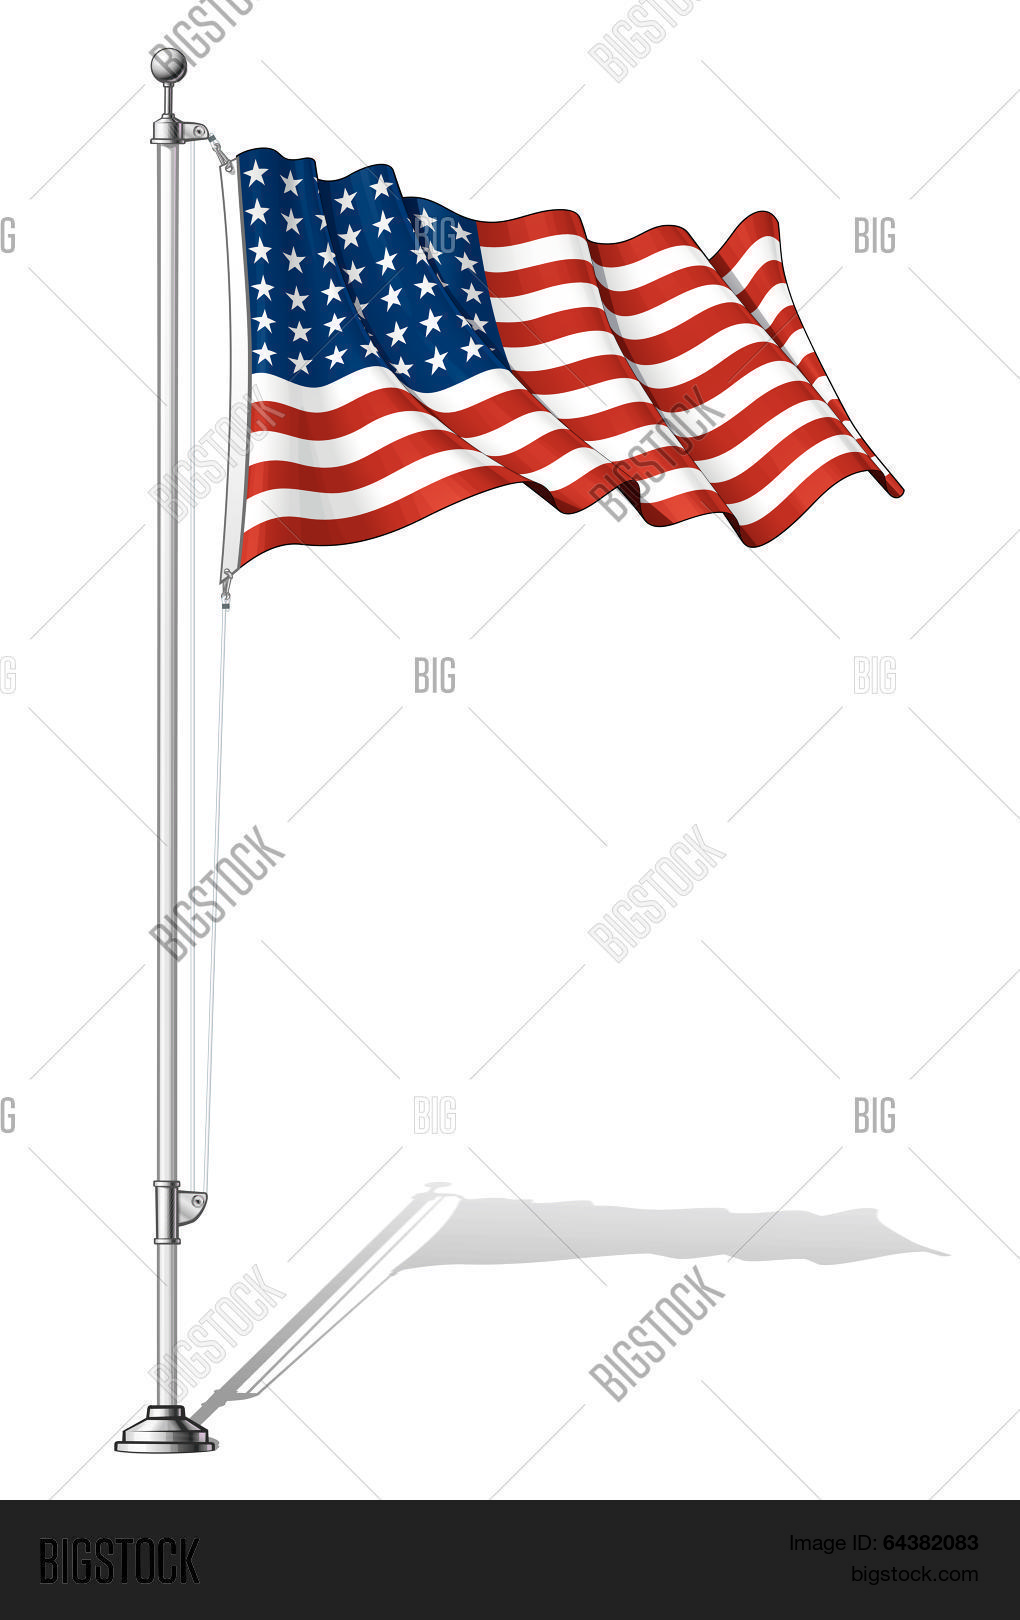 1b114d78d51 Vector Illustration of a waving 48 star US flag in a clean-cut and an aged  version fasten on a flag pole. This was the flag of the United States  during WWI ...